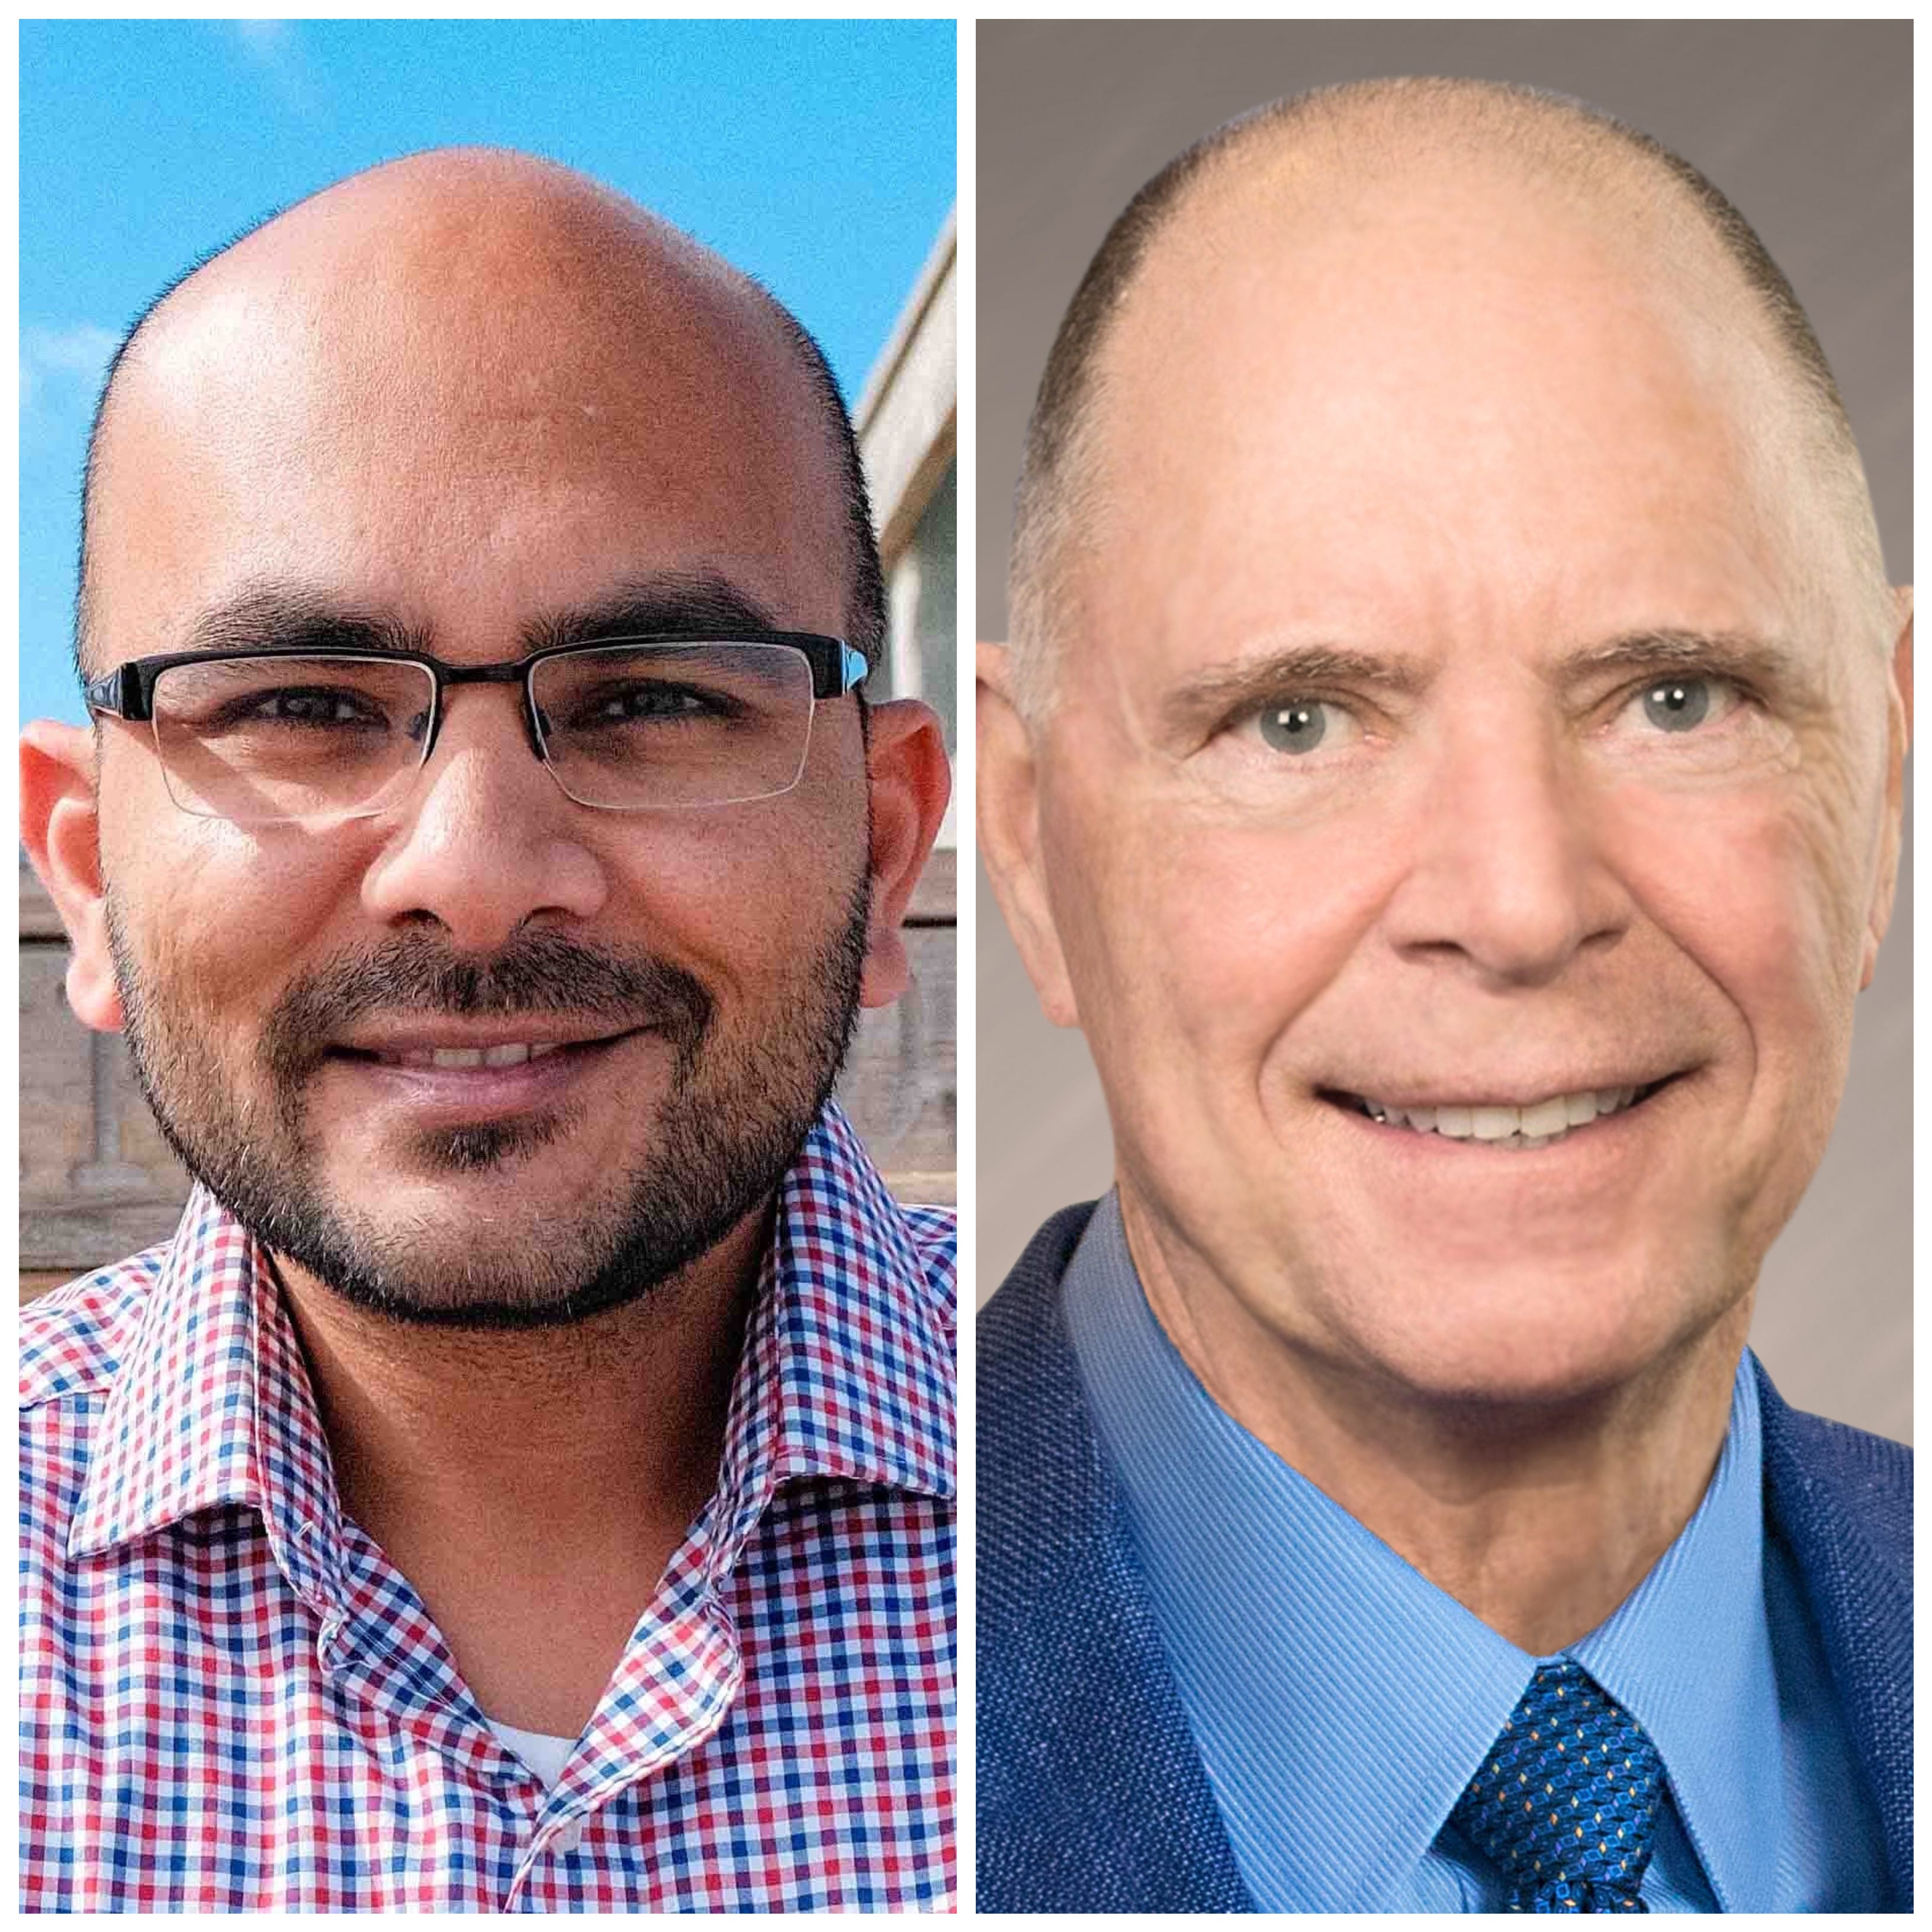 Candidates for U.S. House of Representatives District 8 talk to TCPalm's Editorial Board